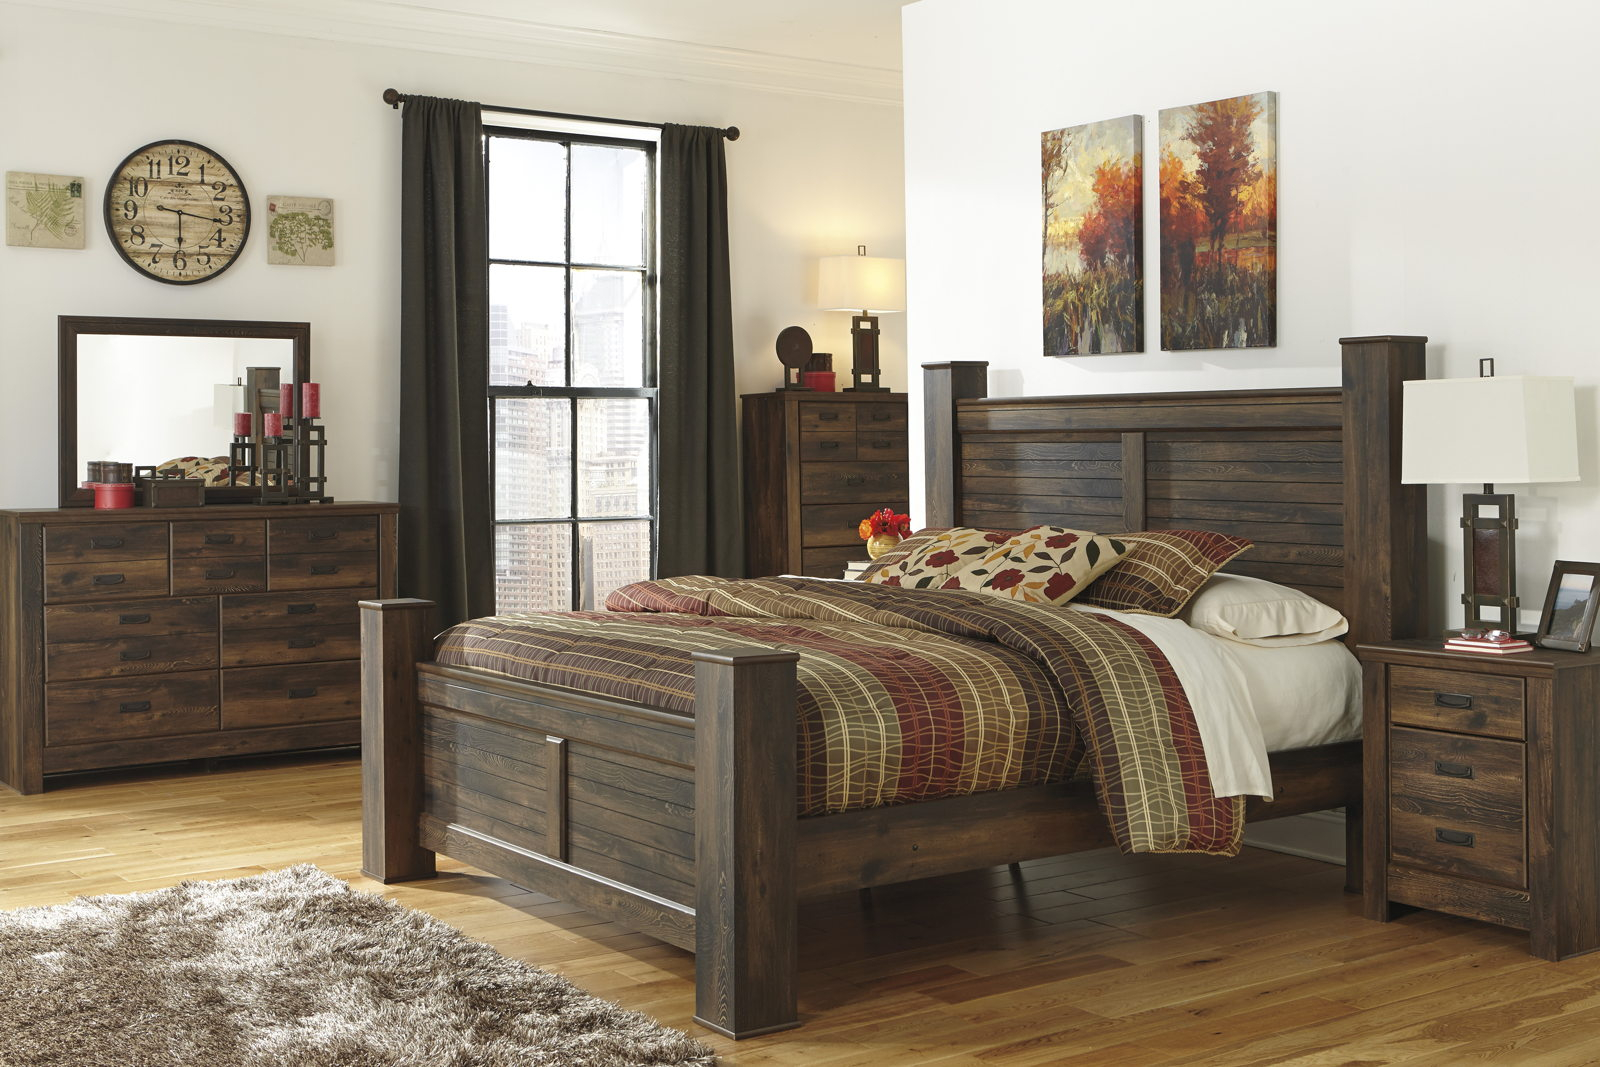 Quinden Rustic Poster Bedroom Set In Dark Brown with regard to dimensions 1600 X 1067